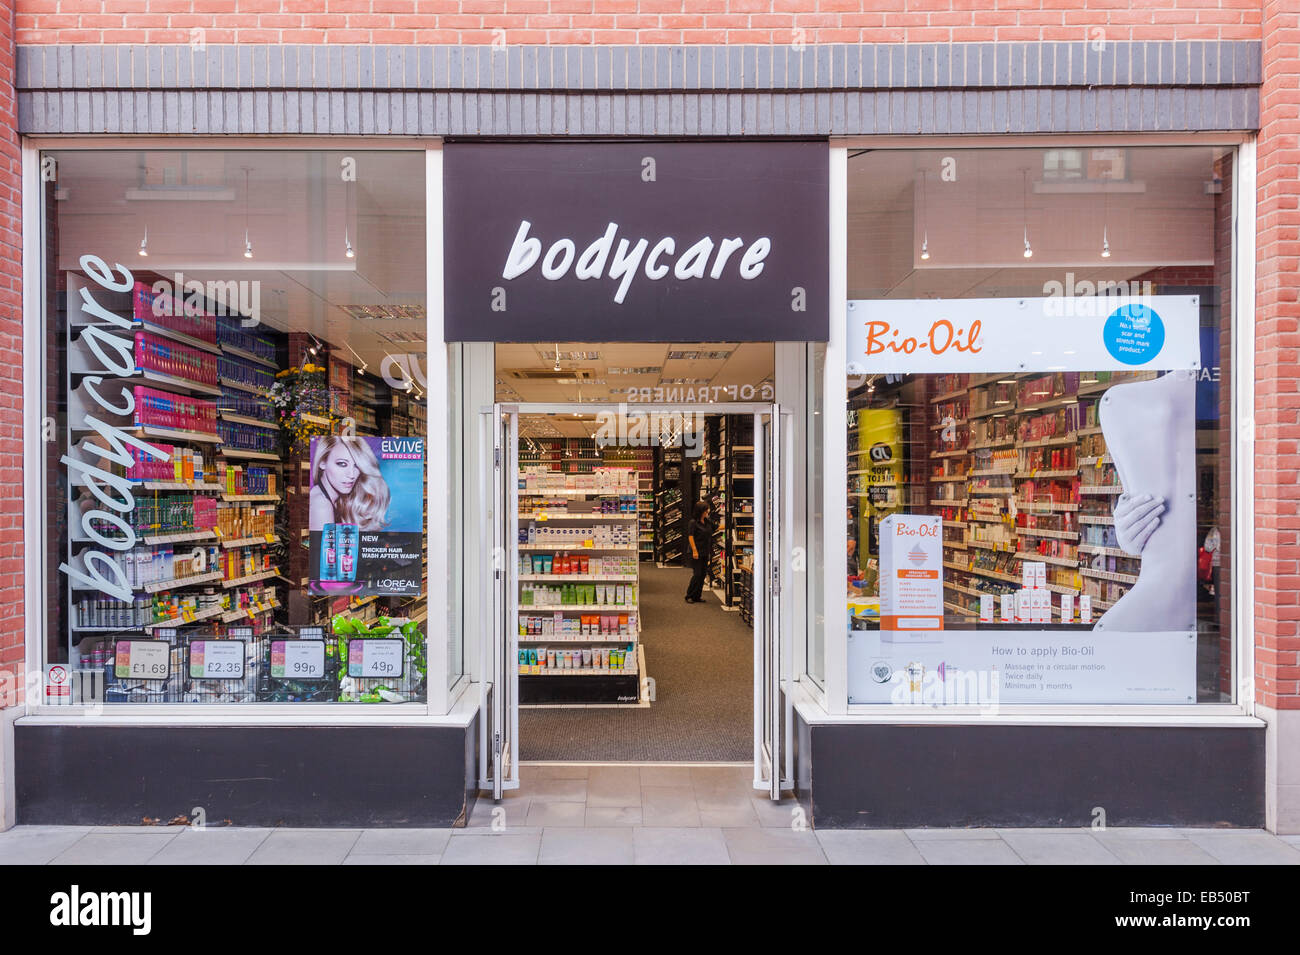 Bodycare manchester city centre